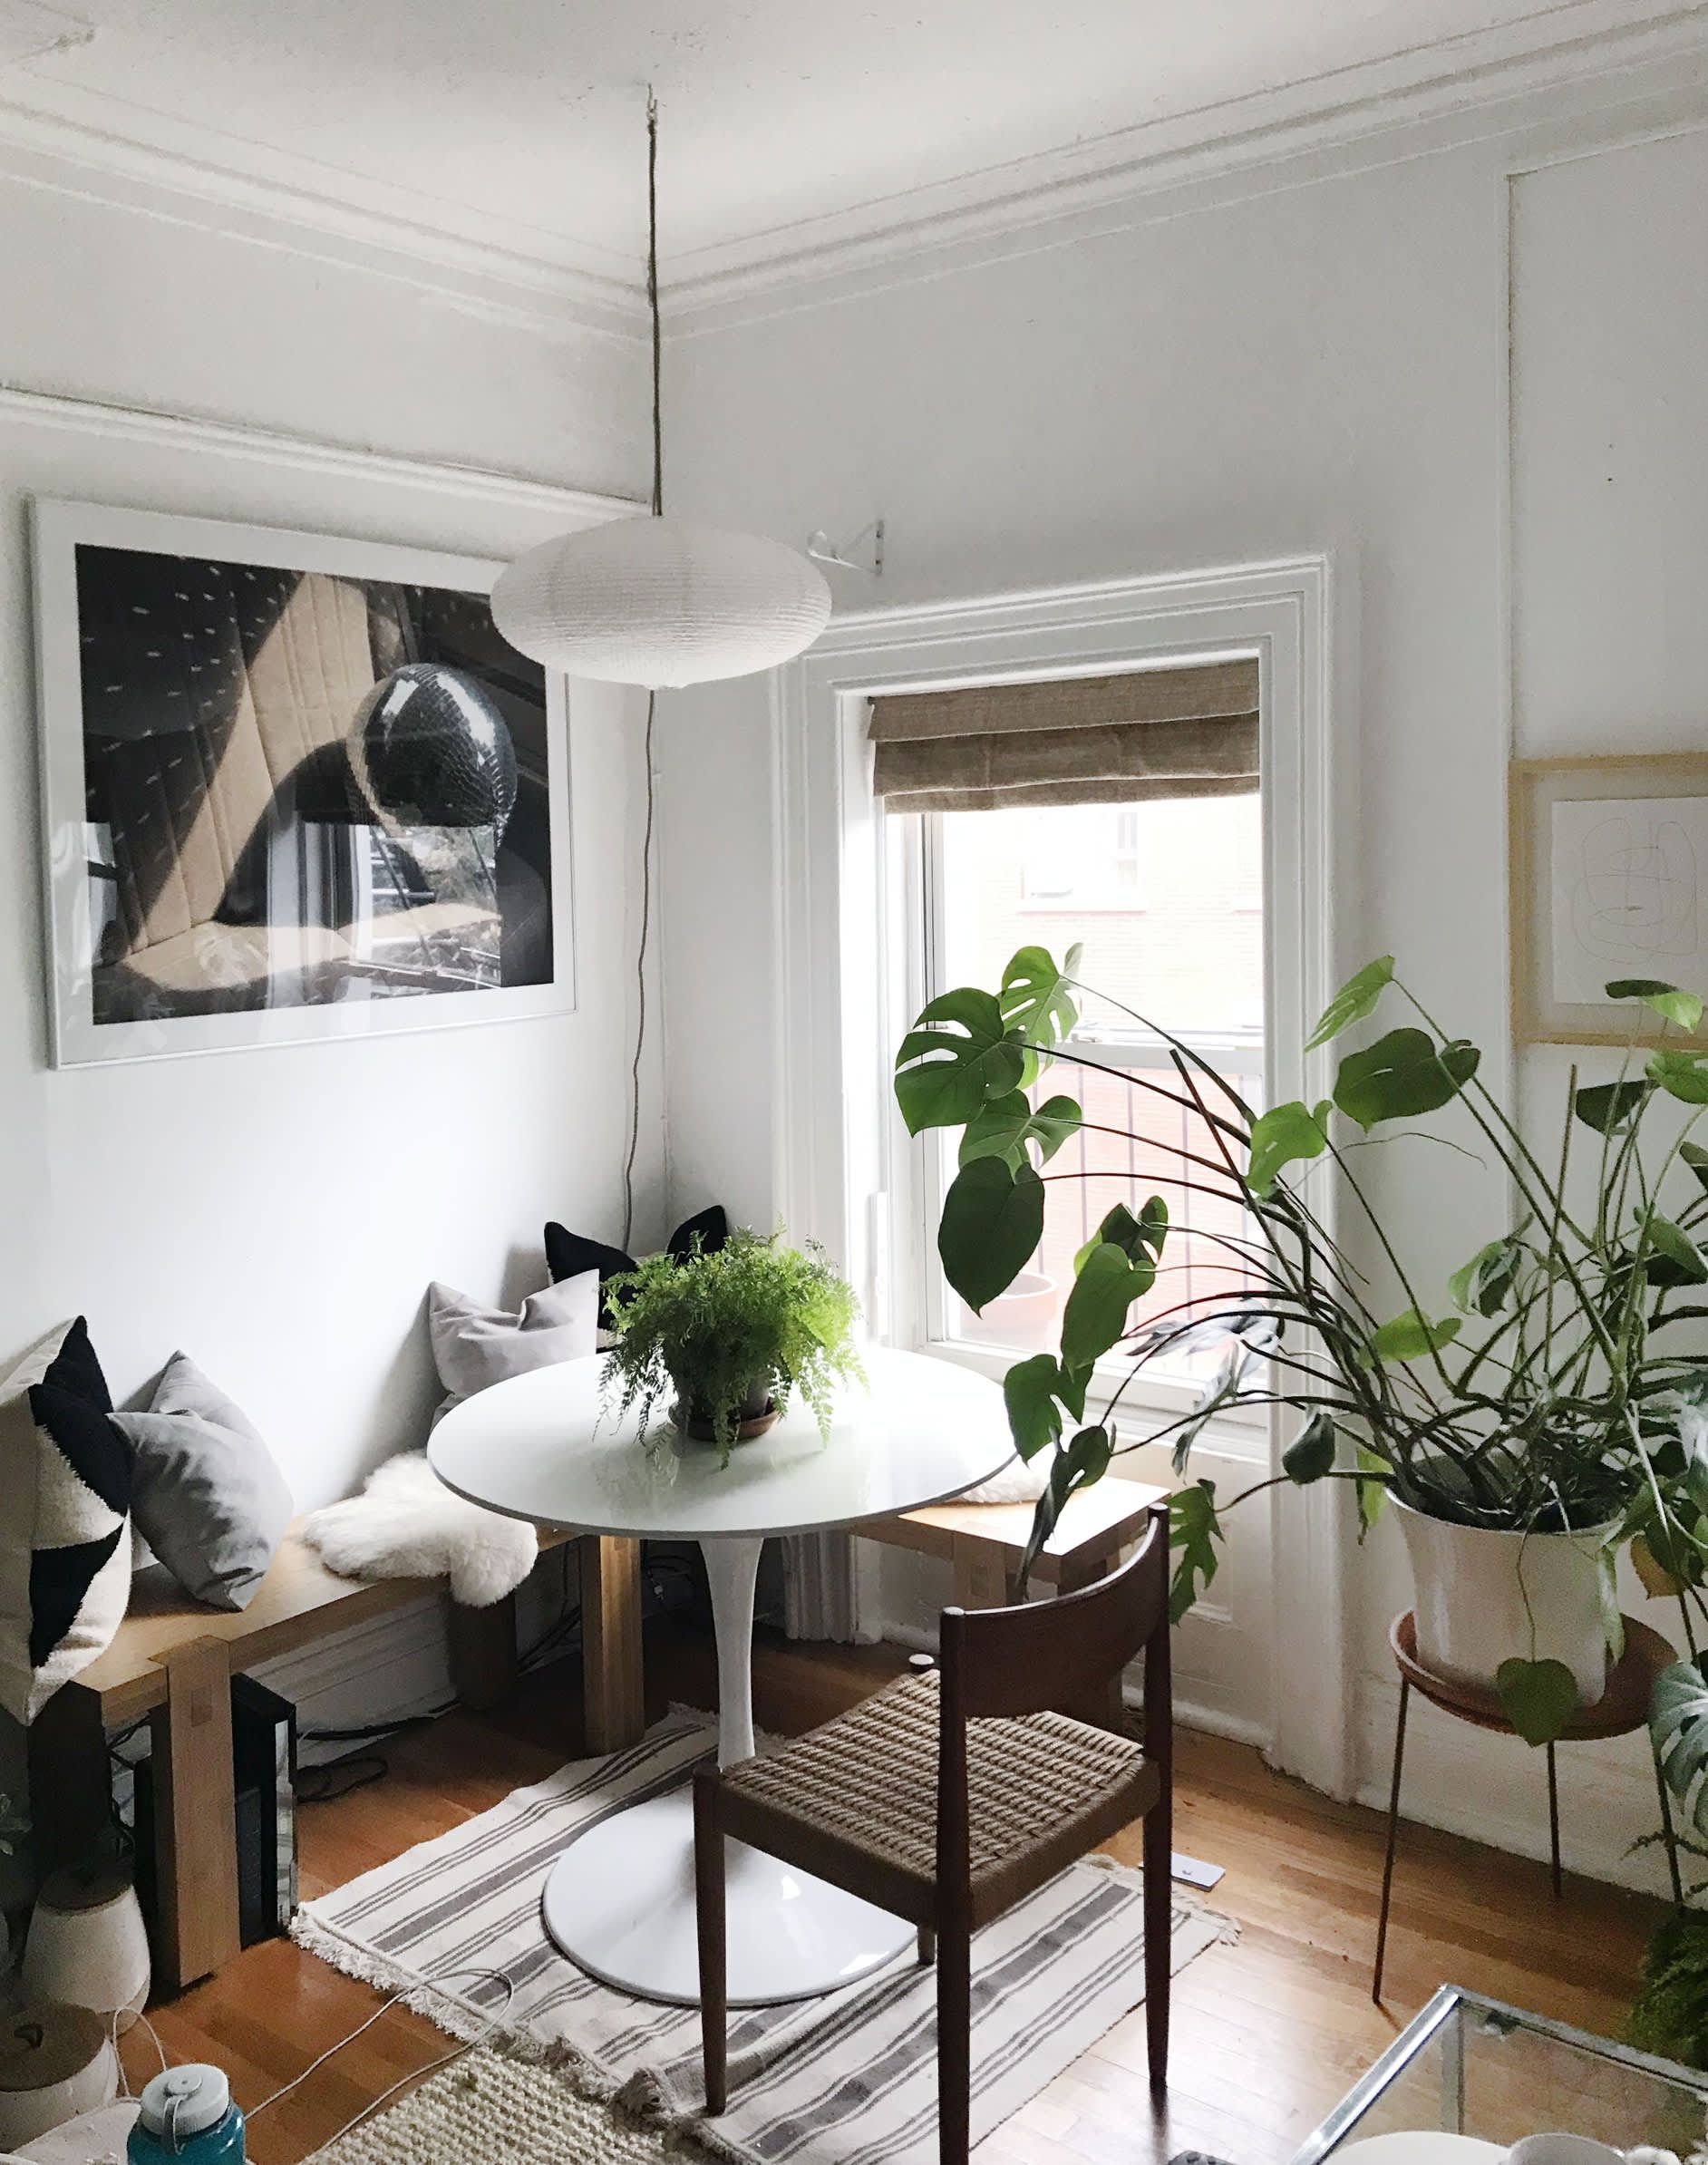 Small Condo Living Room Design Ideas: 10 Small Living Rooms That Make Space For A Dining Table